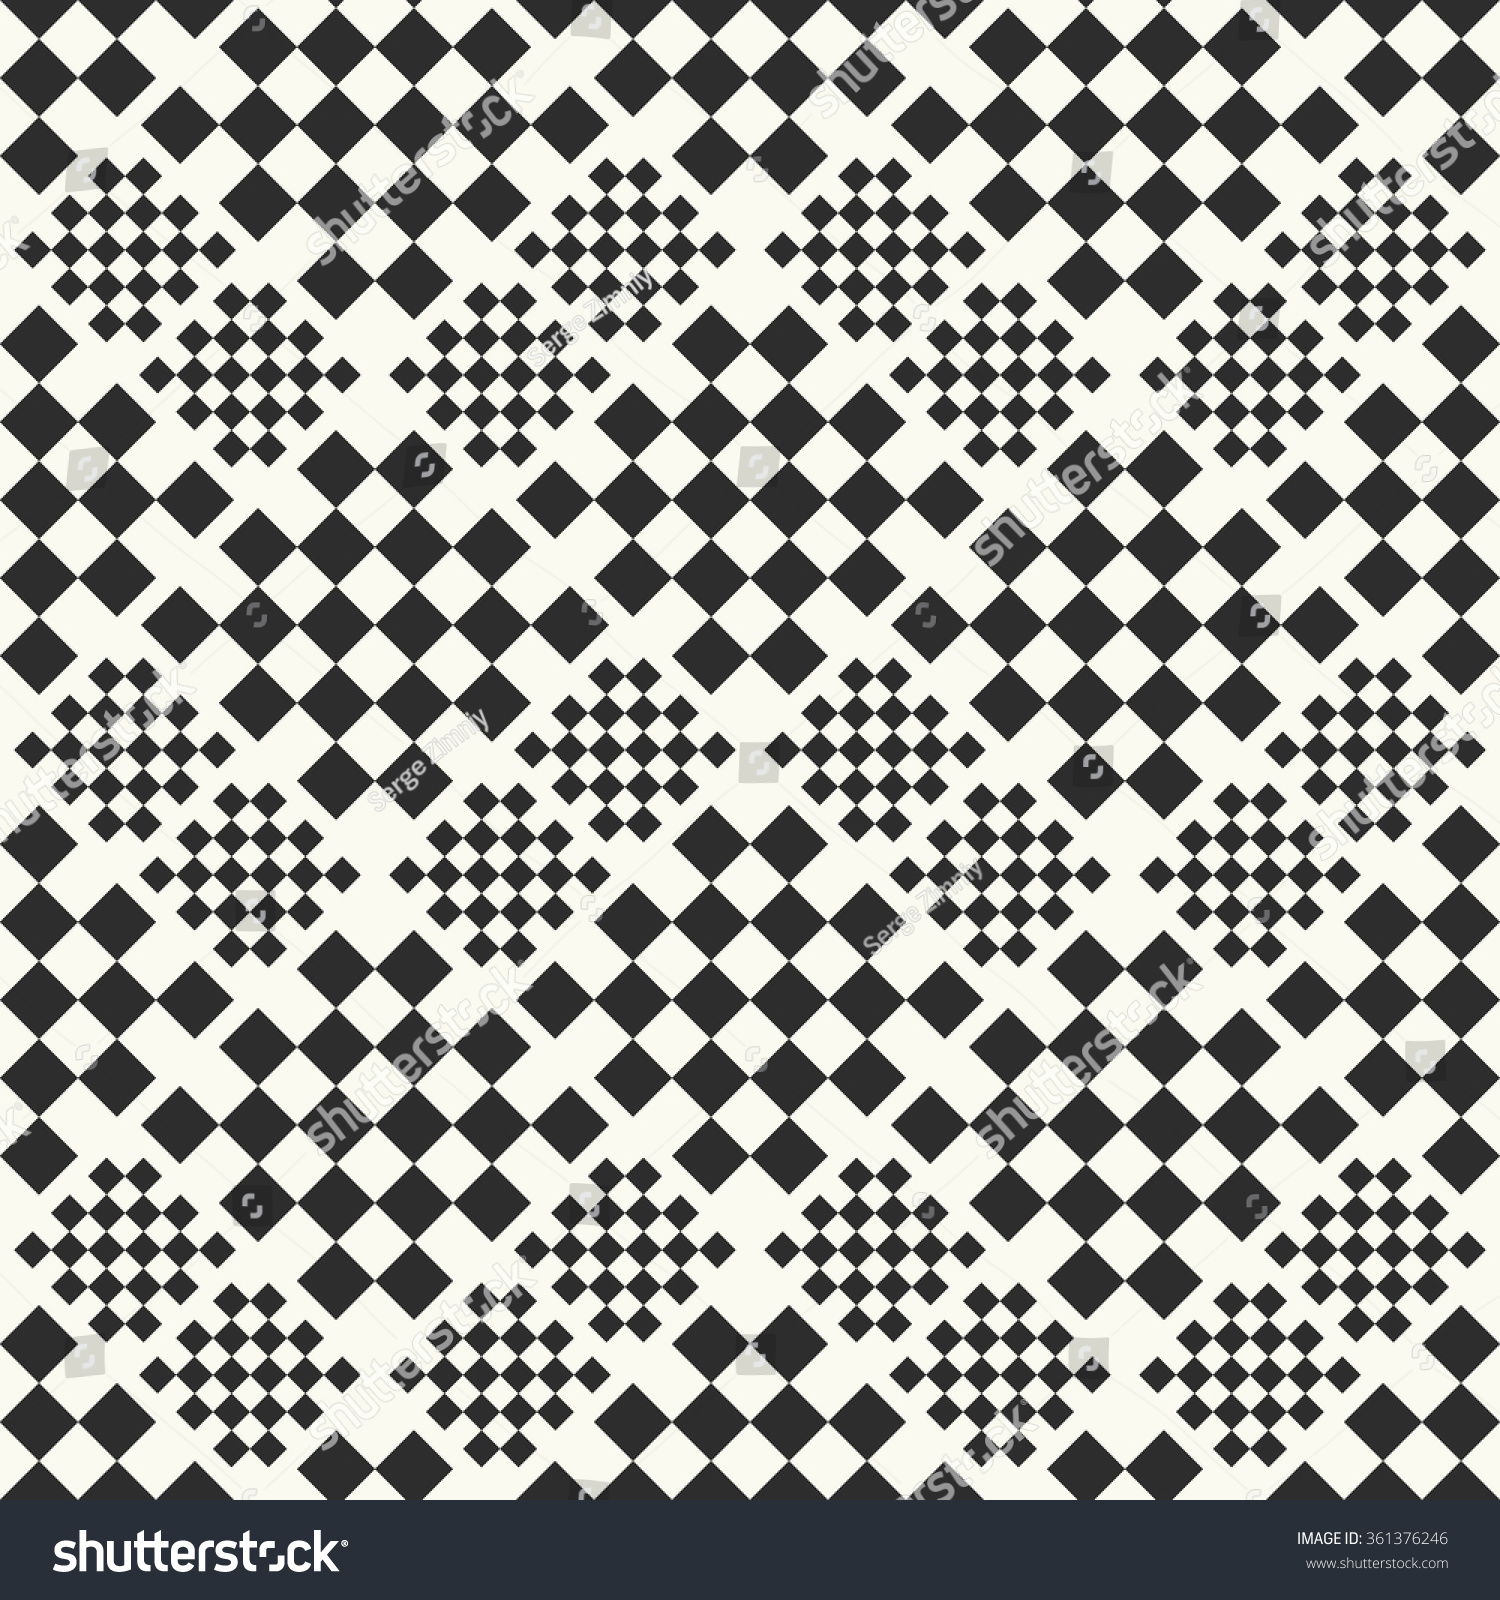 Checkered Design Vector Seamless Pattern Fabric Background Checkered Stock Vector